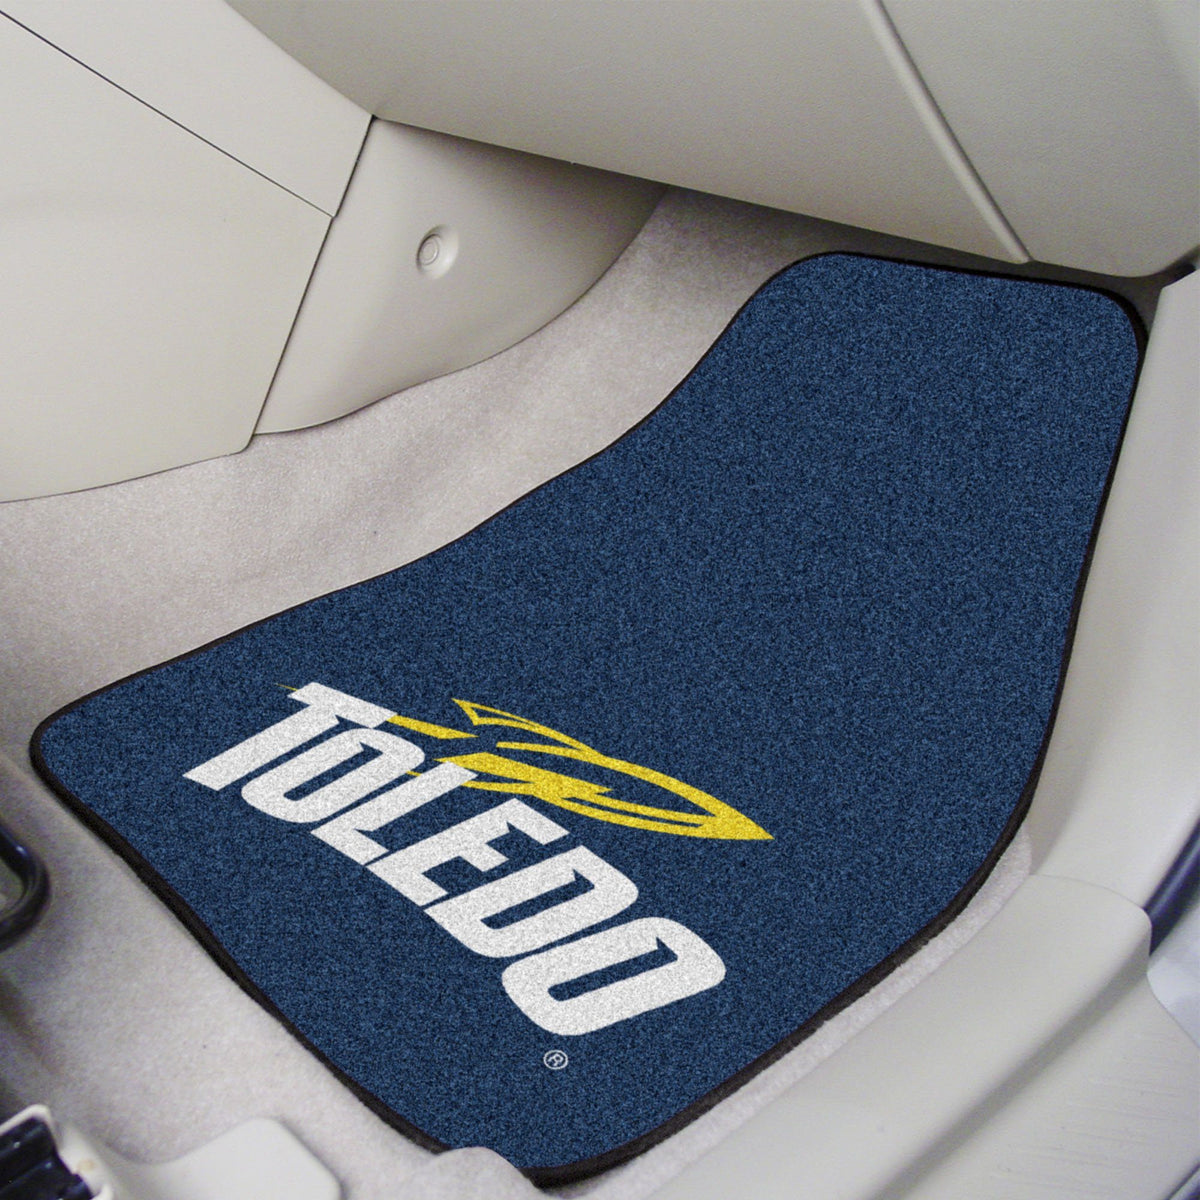 Collegiate - Carpet Car Mat, 2-Piece Set: T - Z Collegiate Car Mat, Front Car Mats, 2-pc Carpet Car Mat Set, Collegiate, Auto Fan Mats Toledo